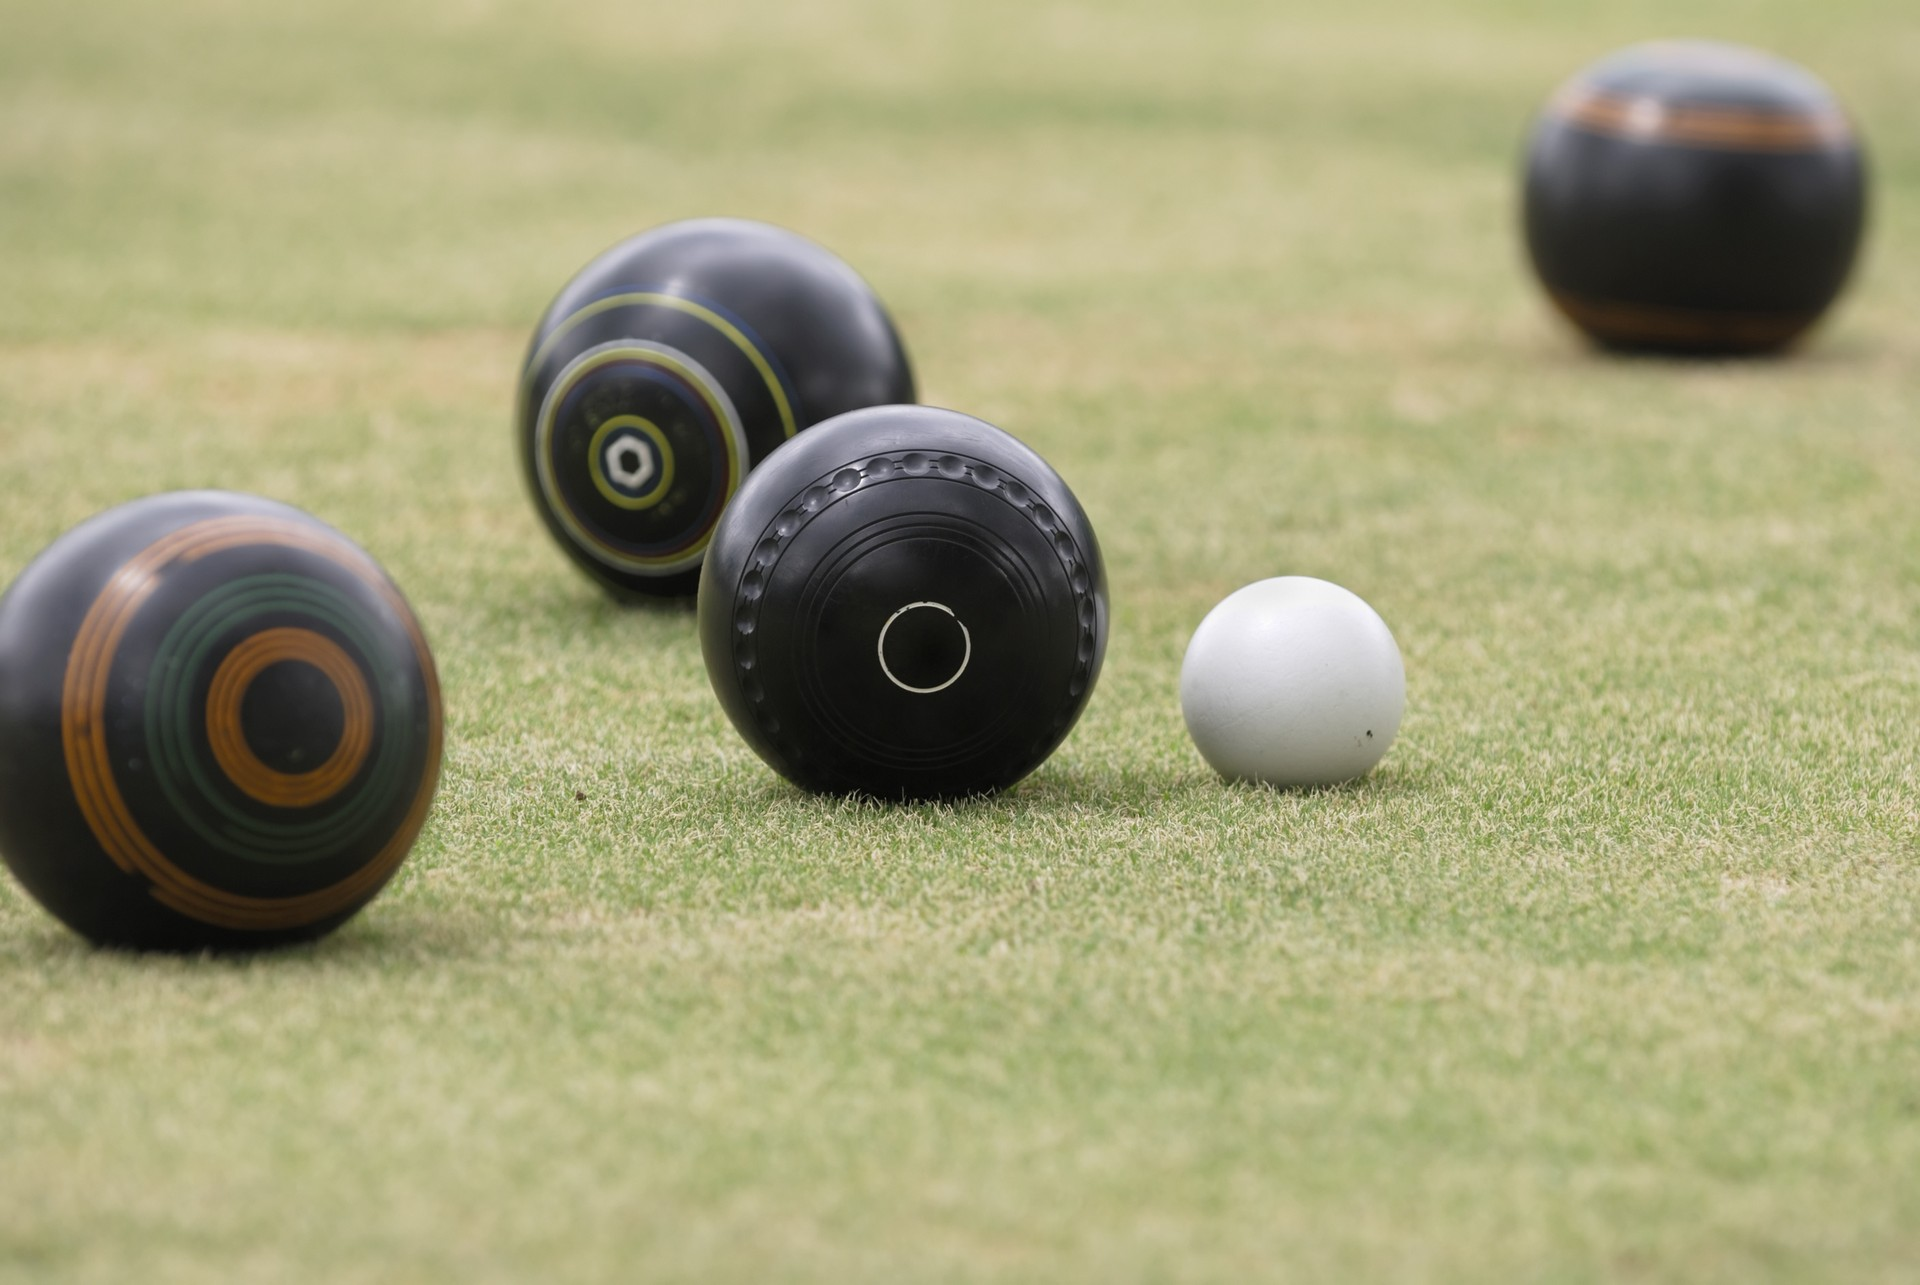 10 Steps To Keep Your Bowling Green Looking Great